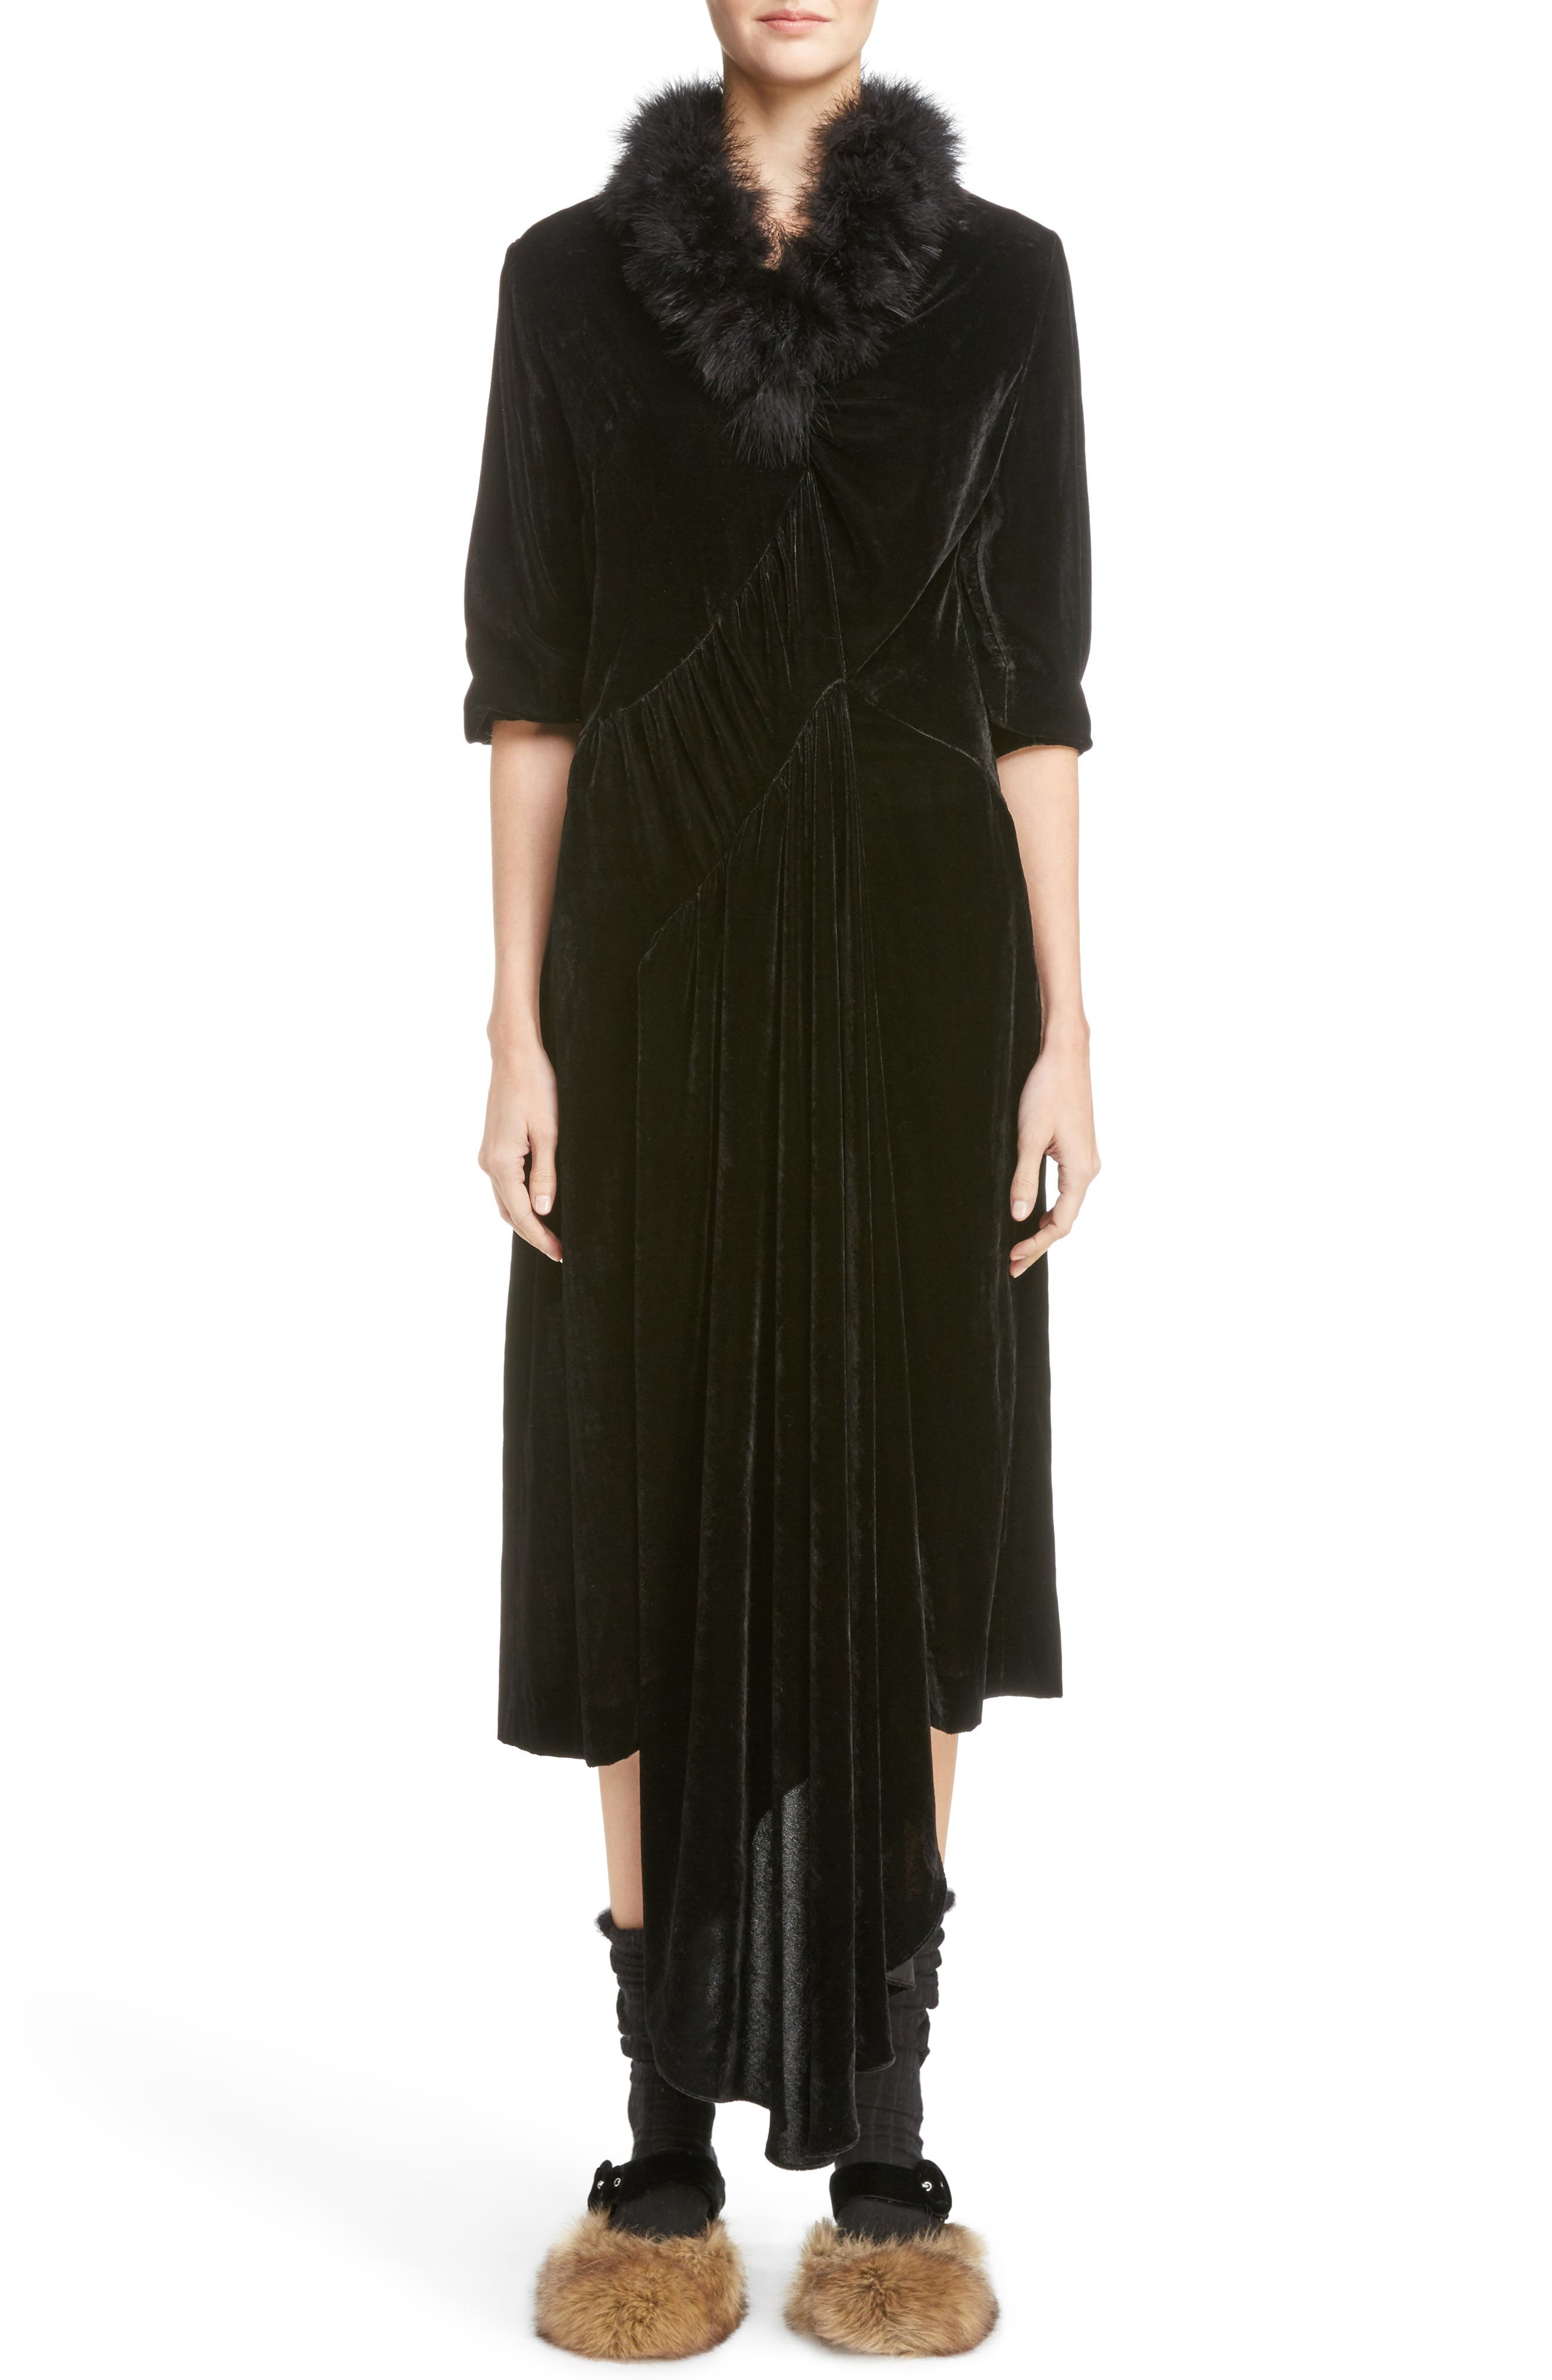 Simone Rocha Asymmetrical Velvet Dress with Marabou Trim